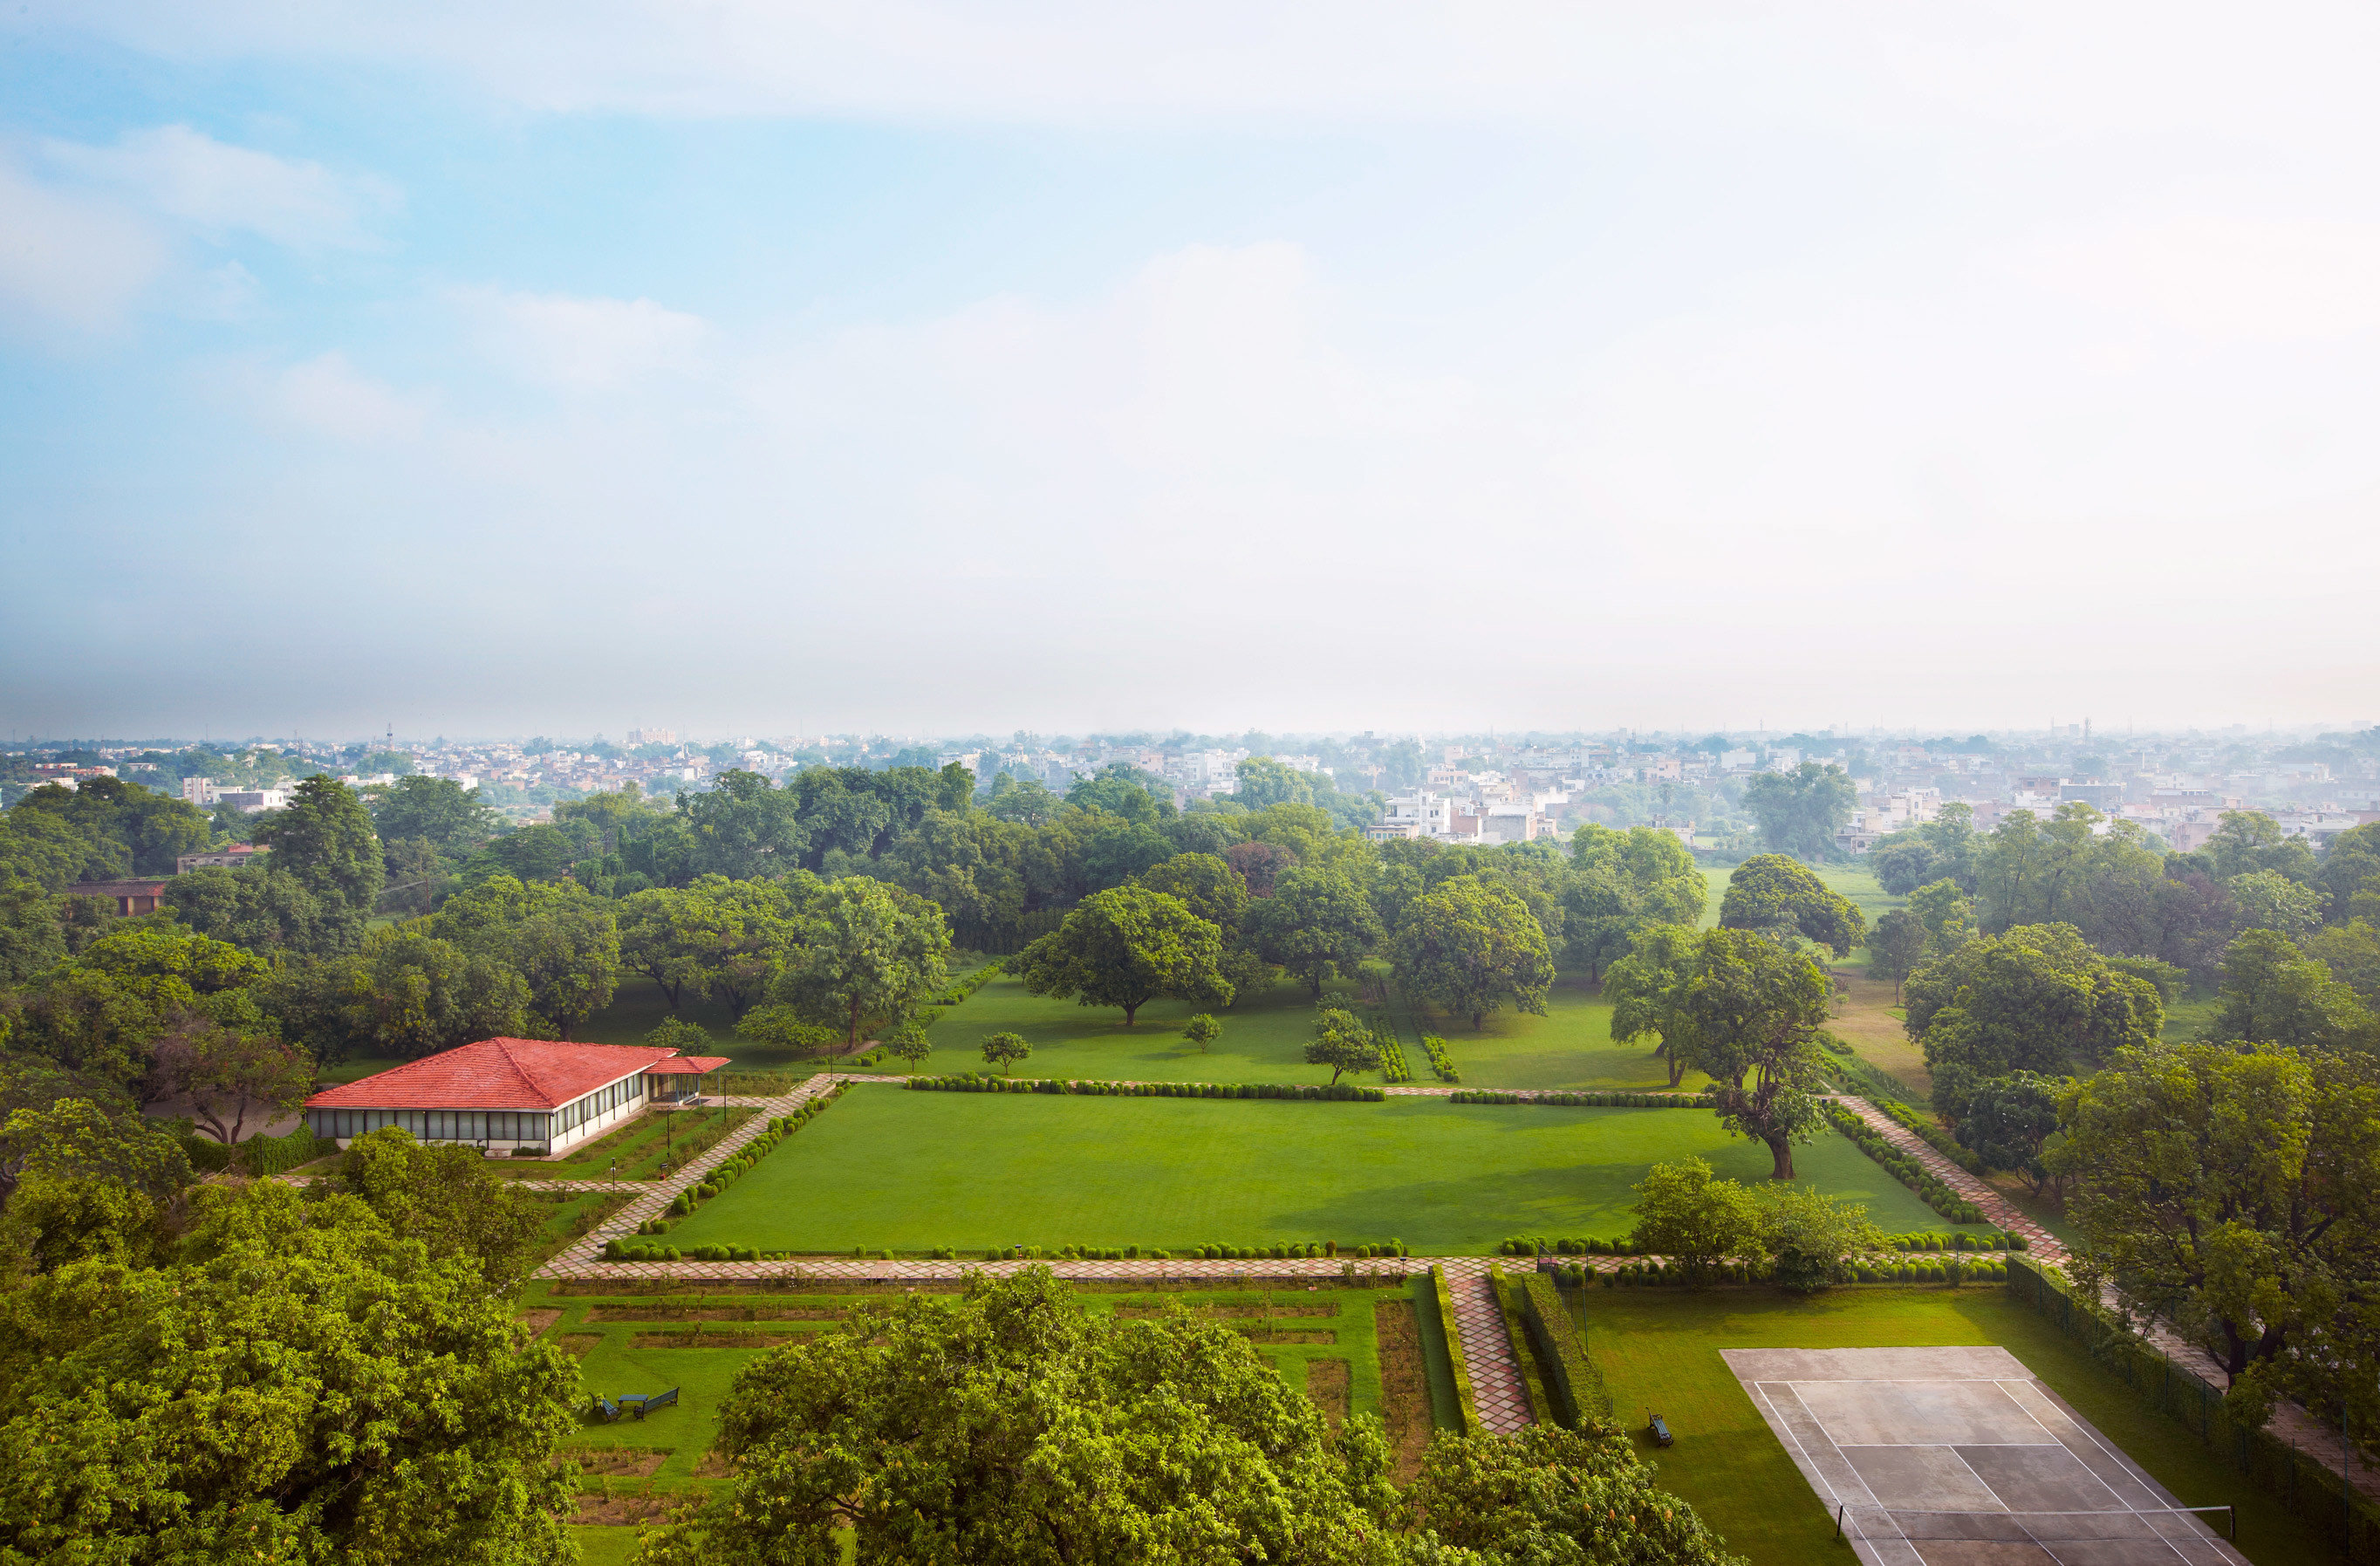 Architecture Buildings Exterior Grounds Outdoors Scenic views tree grass sky structure hill sport venue green field rural area agriculture aerial photography landscape lush way road surrounded hillside highland